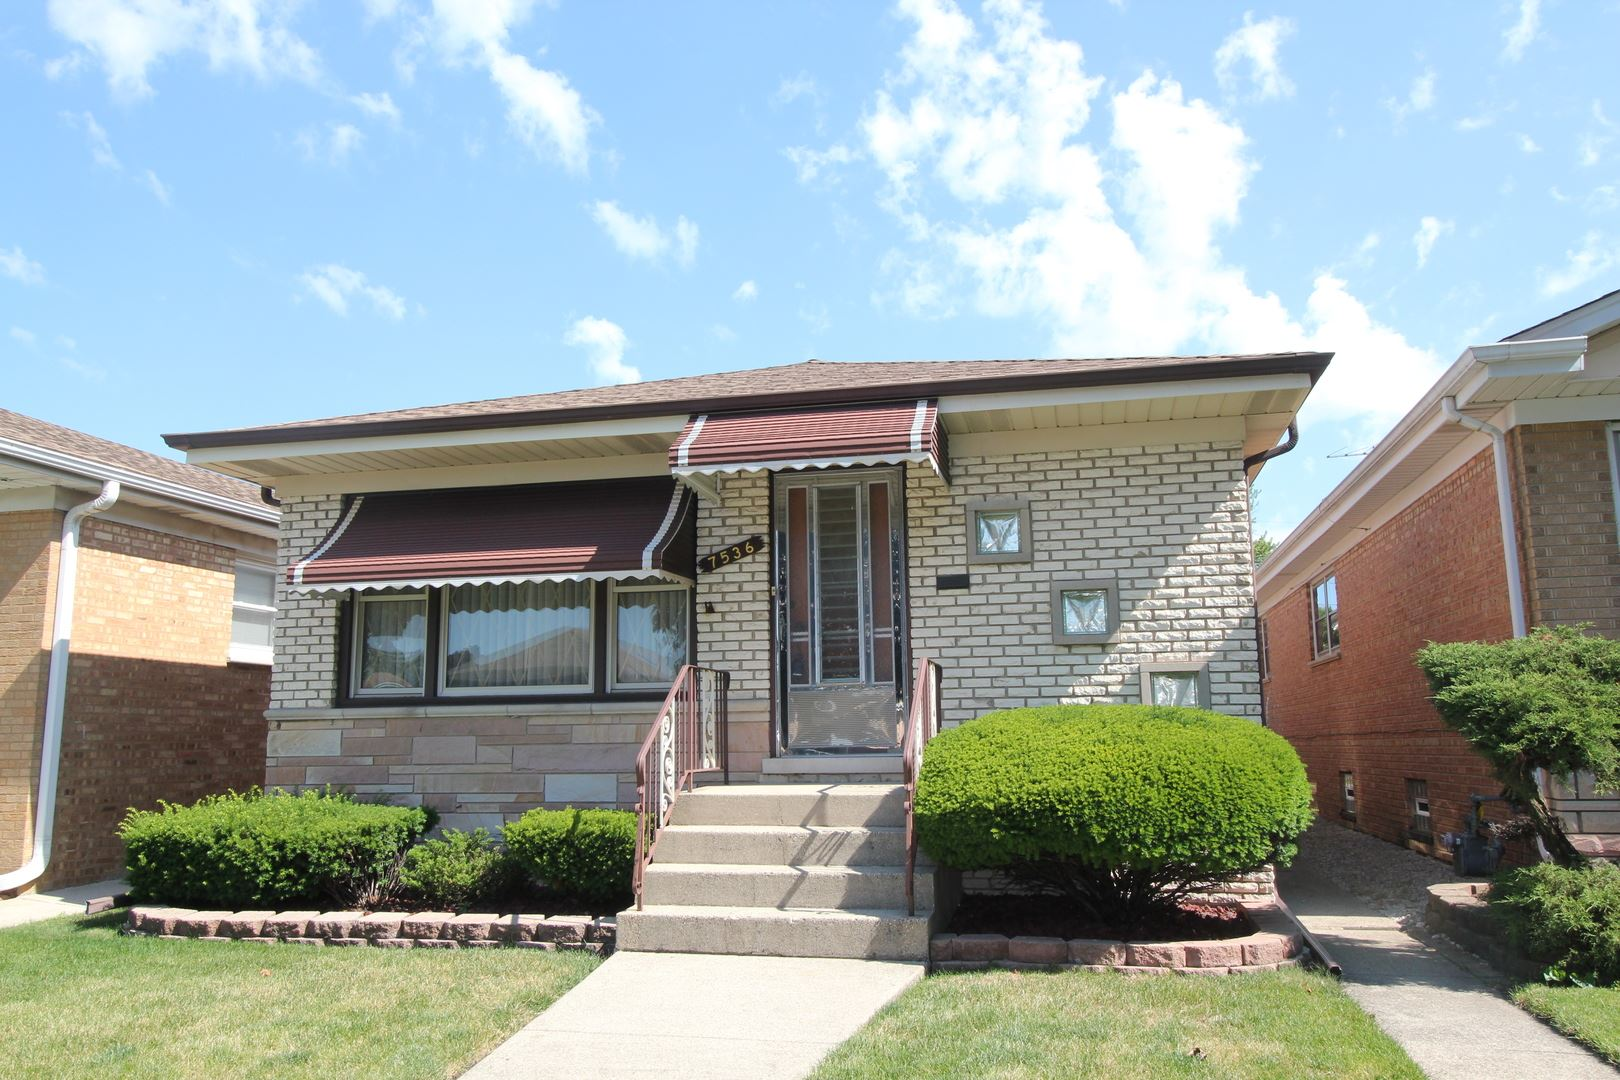 7536 W Argyle Street, Harwood Heights, IL 60706 - #: 10759501